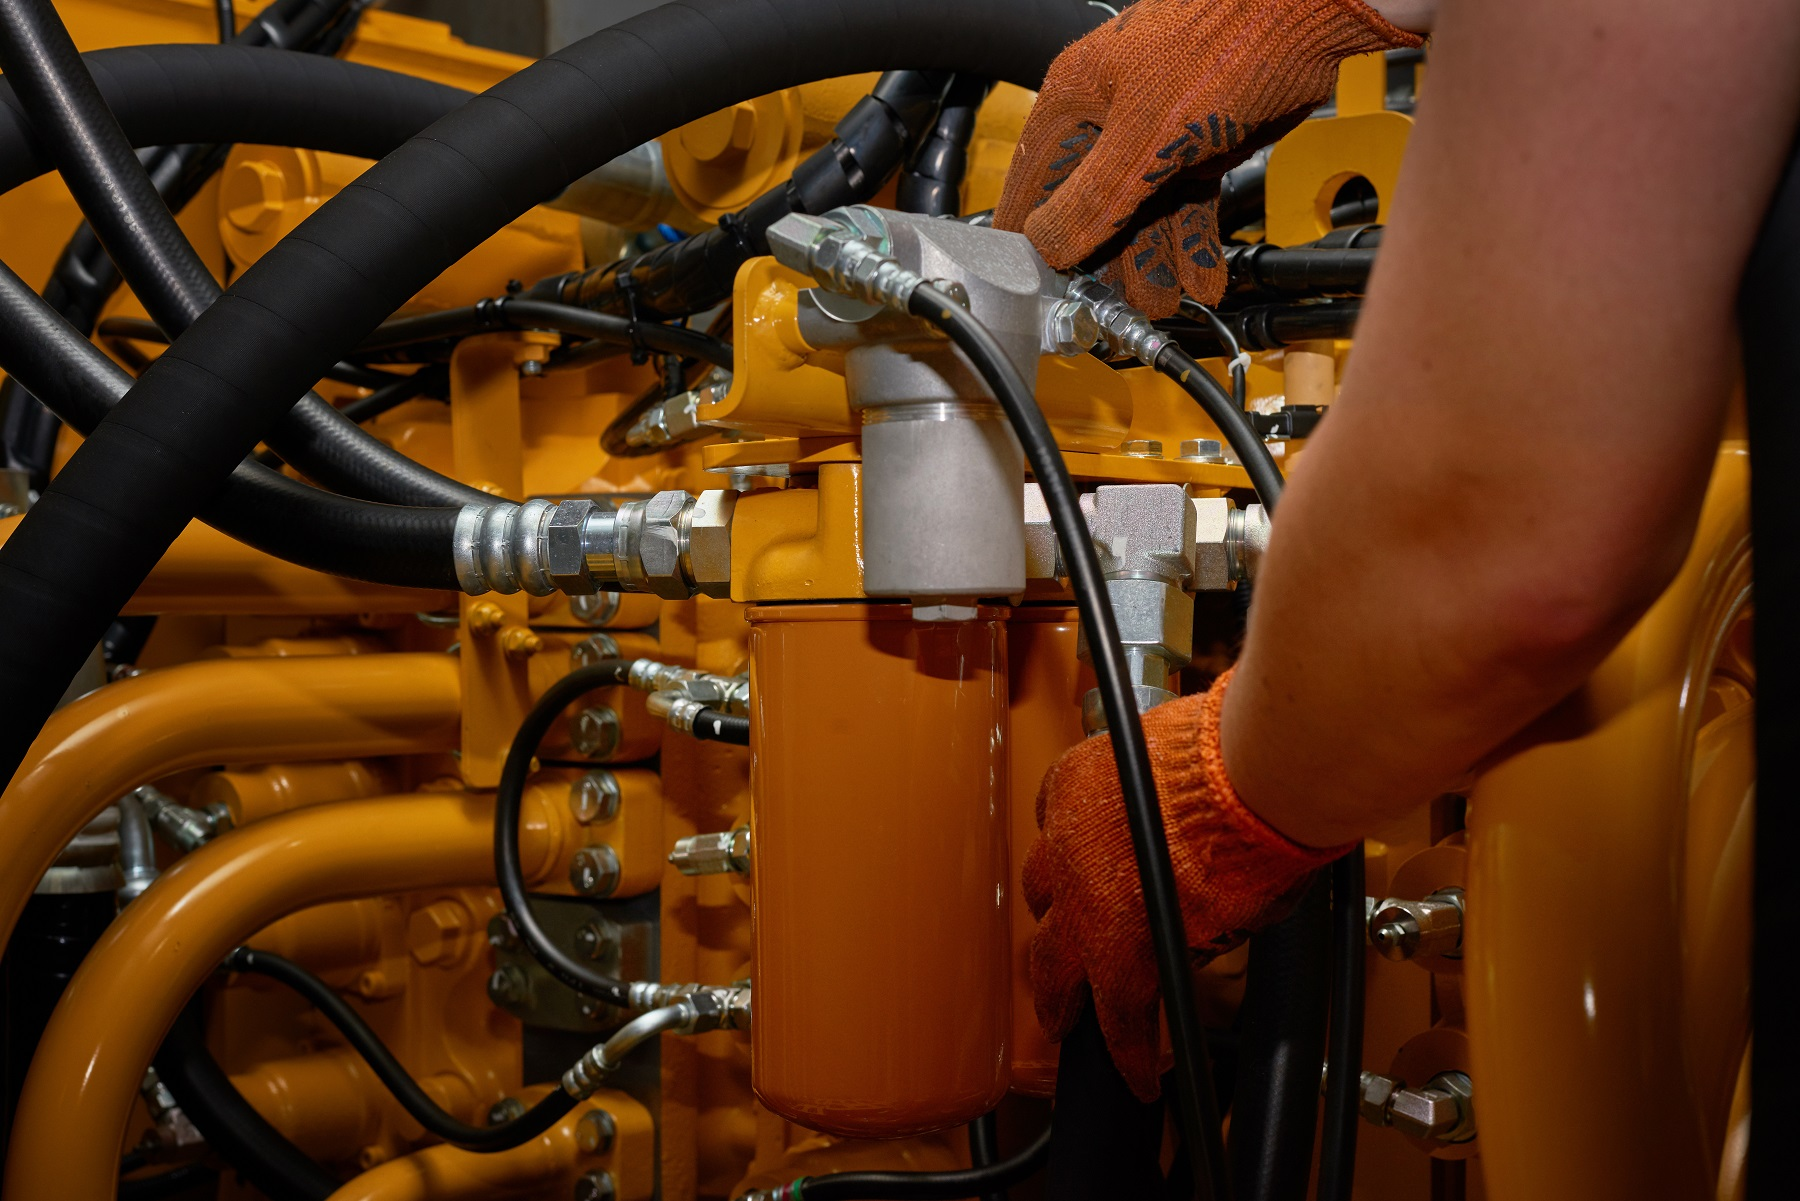 Low key photo of hydraulic pipes maintenance on heavy industry machine.